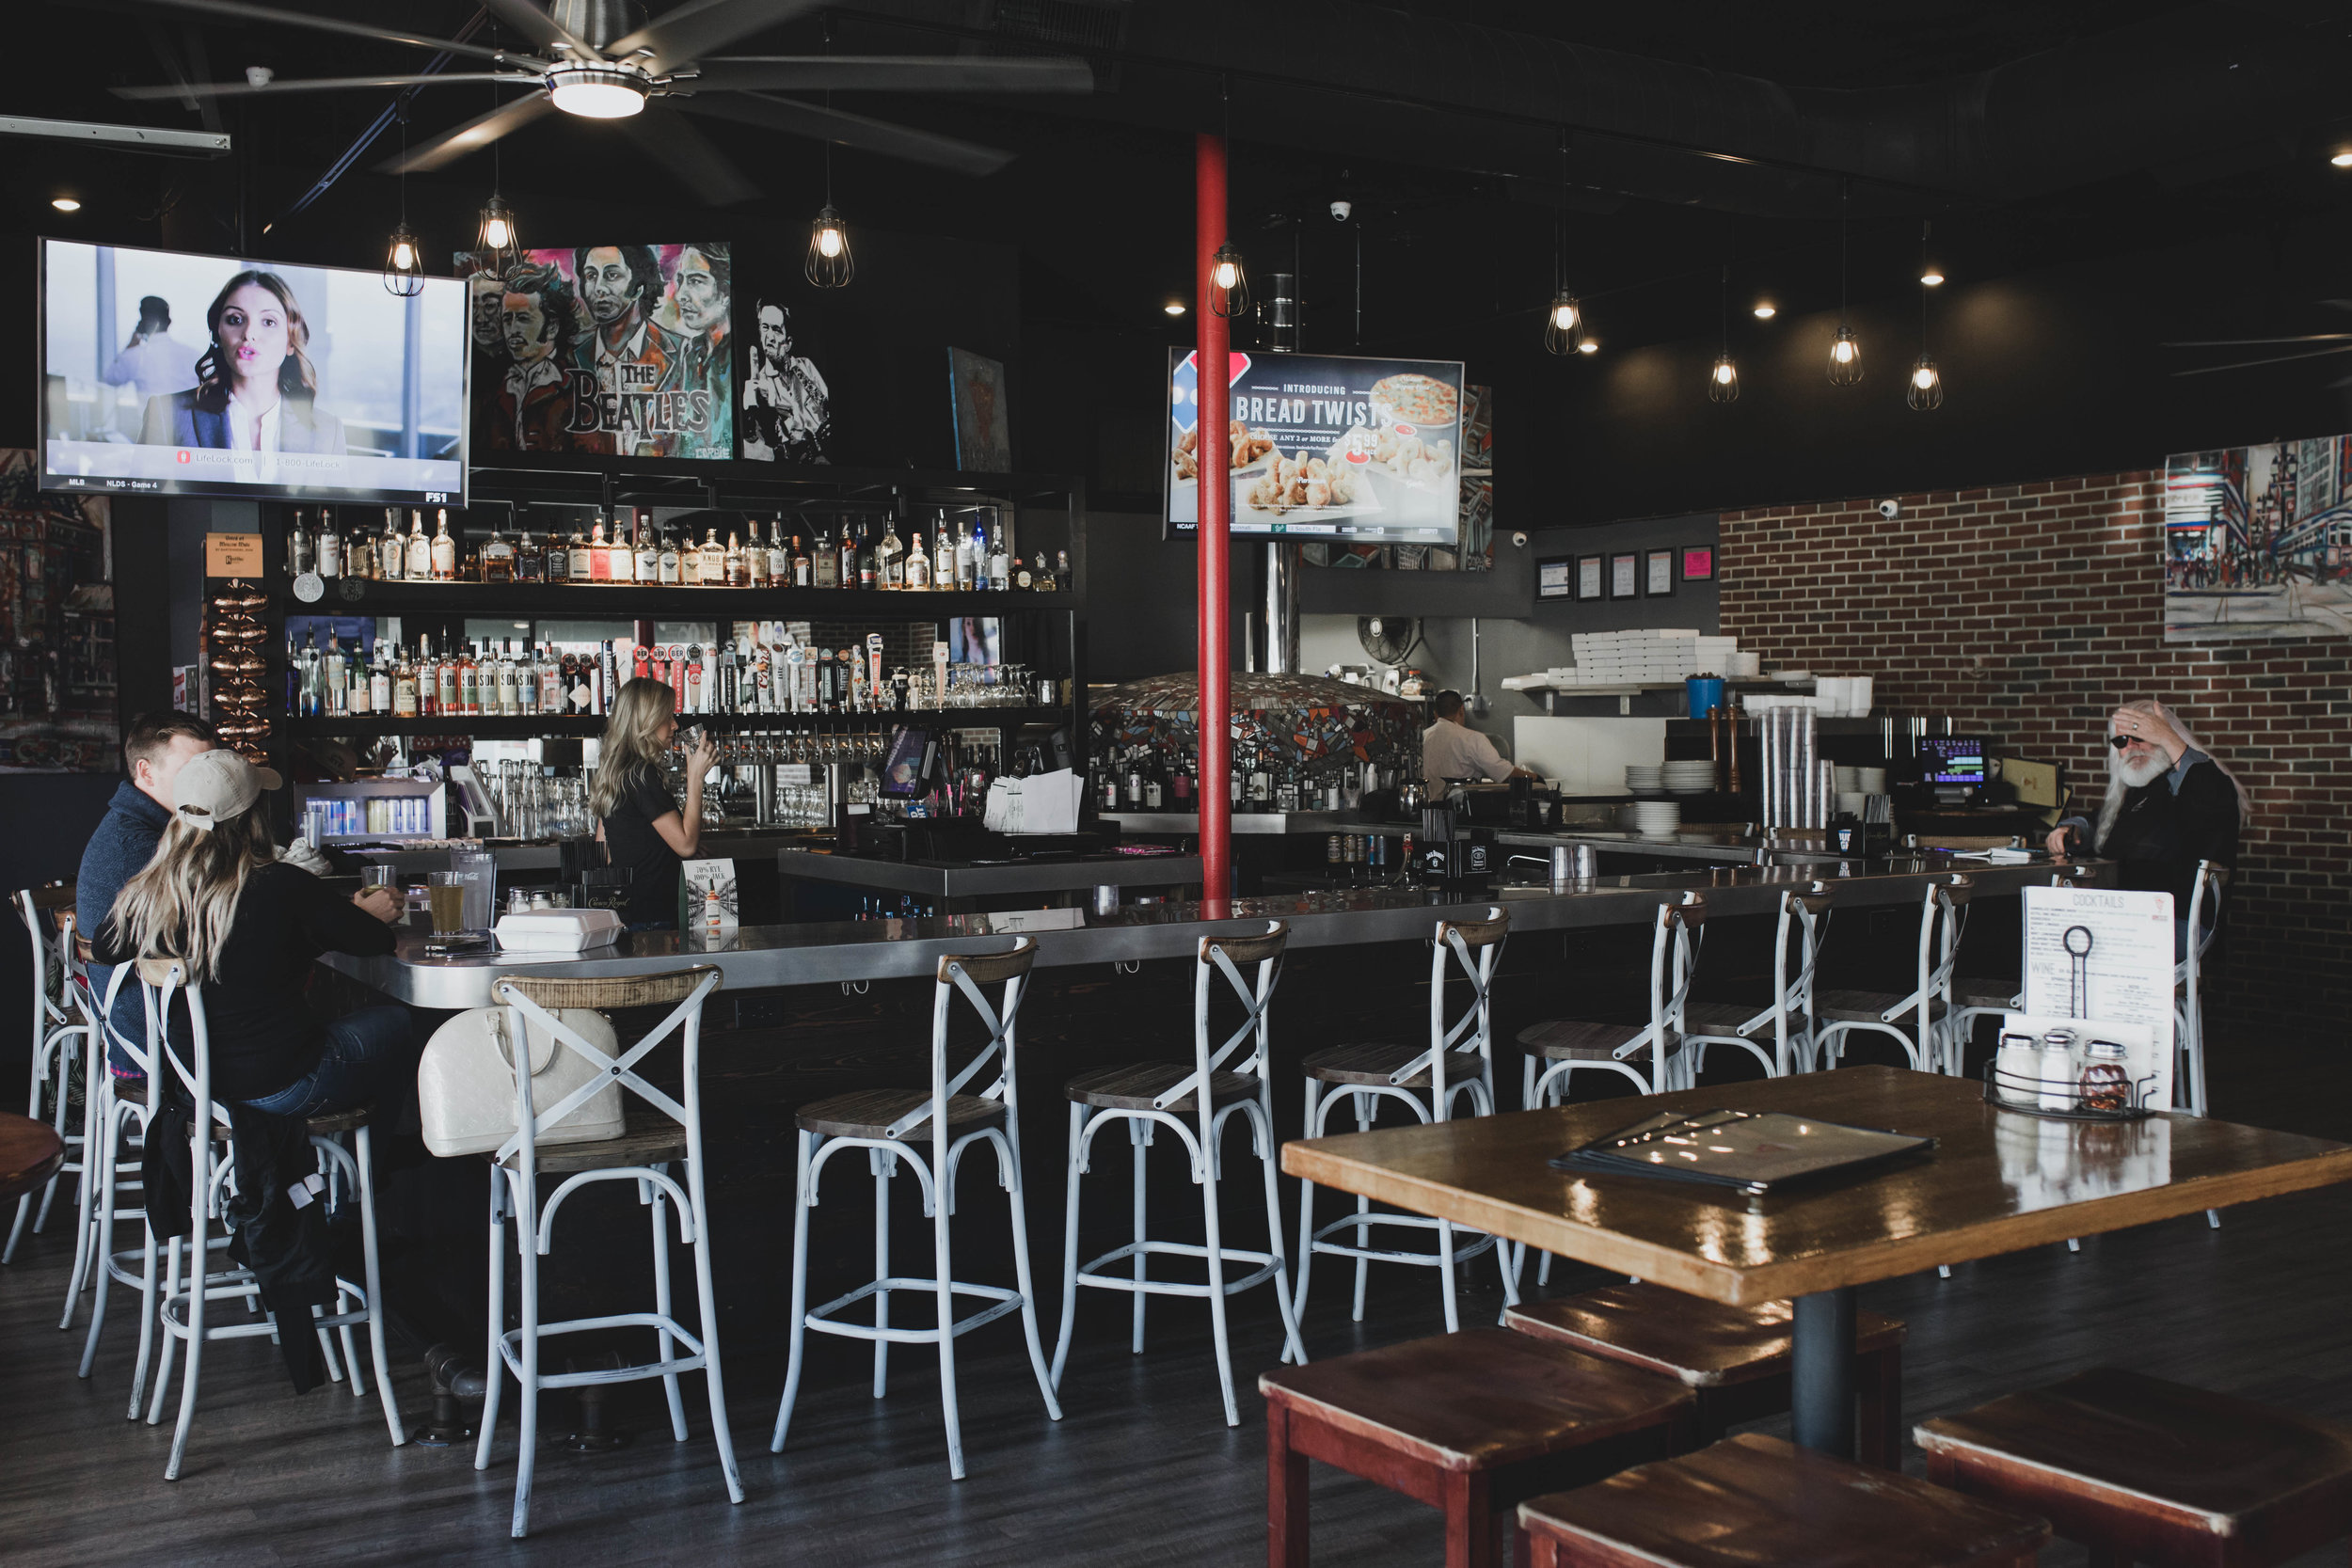 Football Fan? - Homeslice Pizza and Pints is the perfect watch party venue.